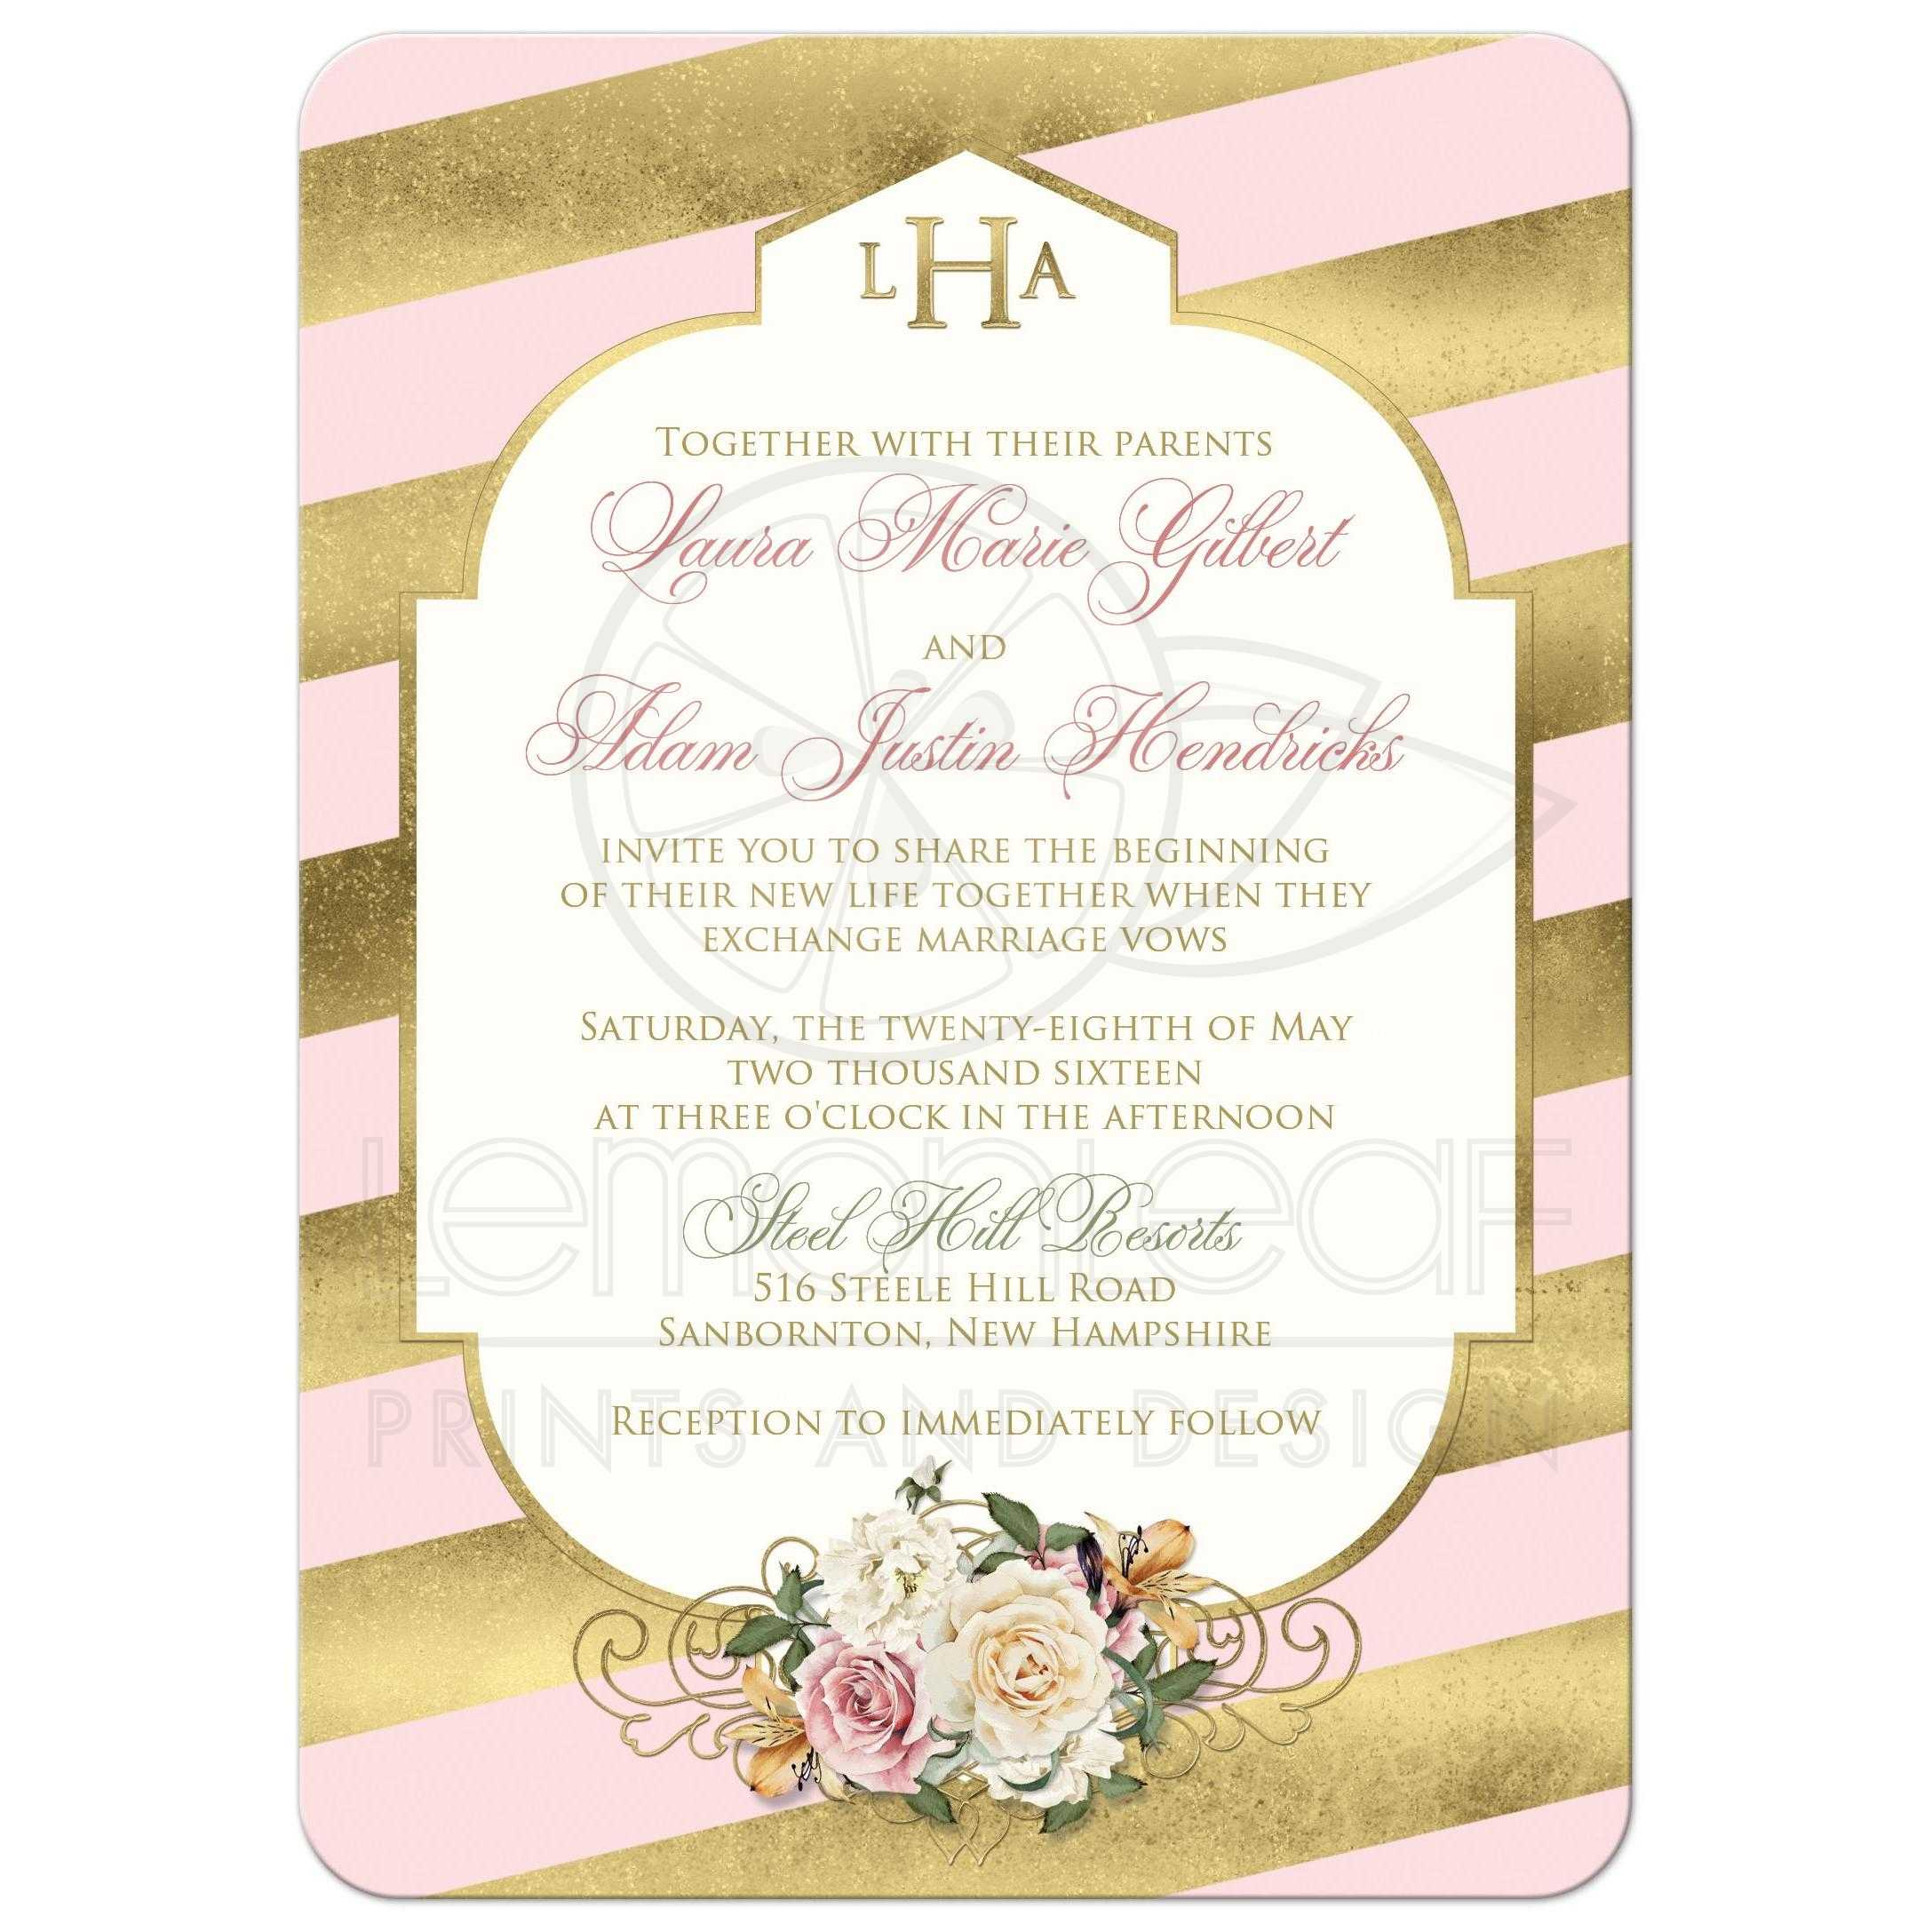 Monogrammed Wedding Invitation | Blush Pink, Faux Gold, Scroll ...